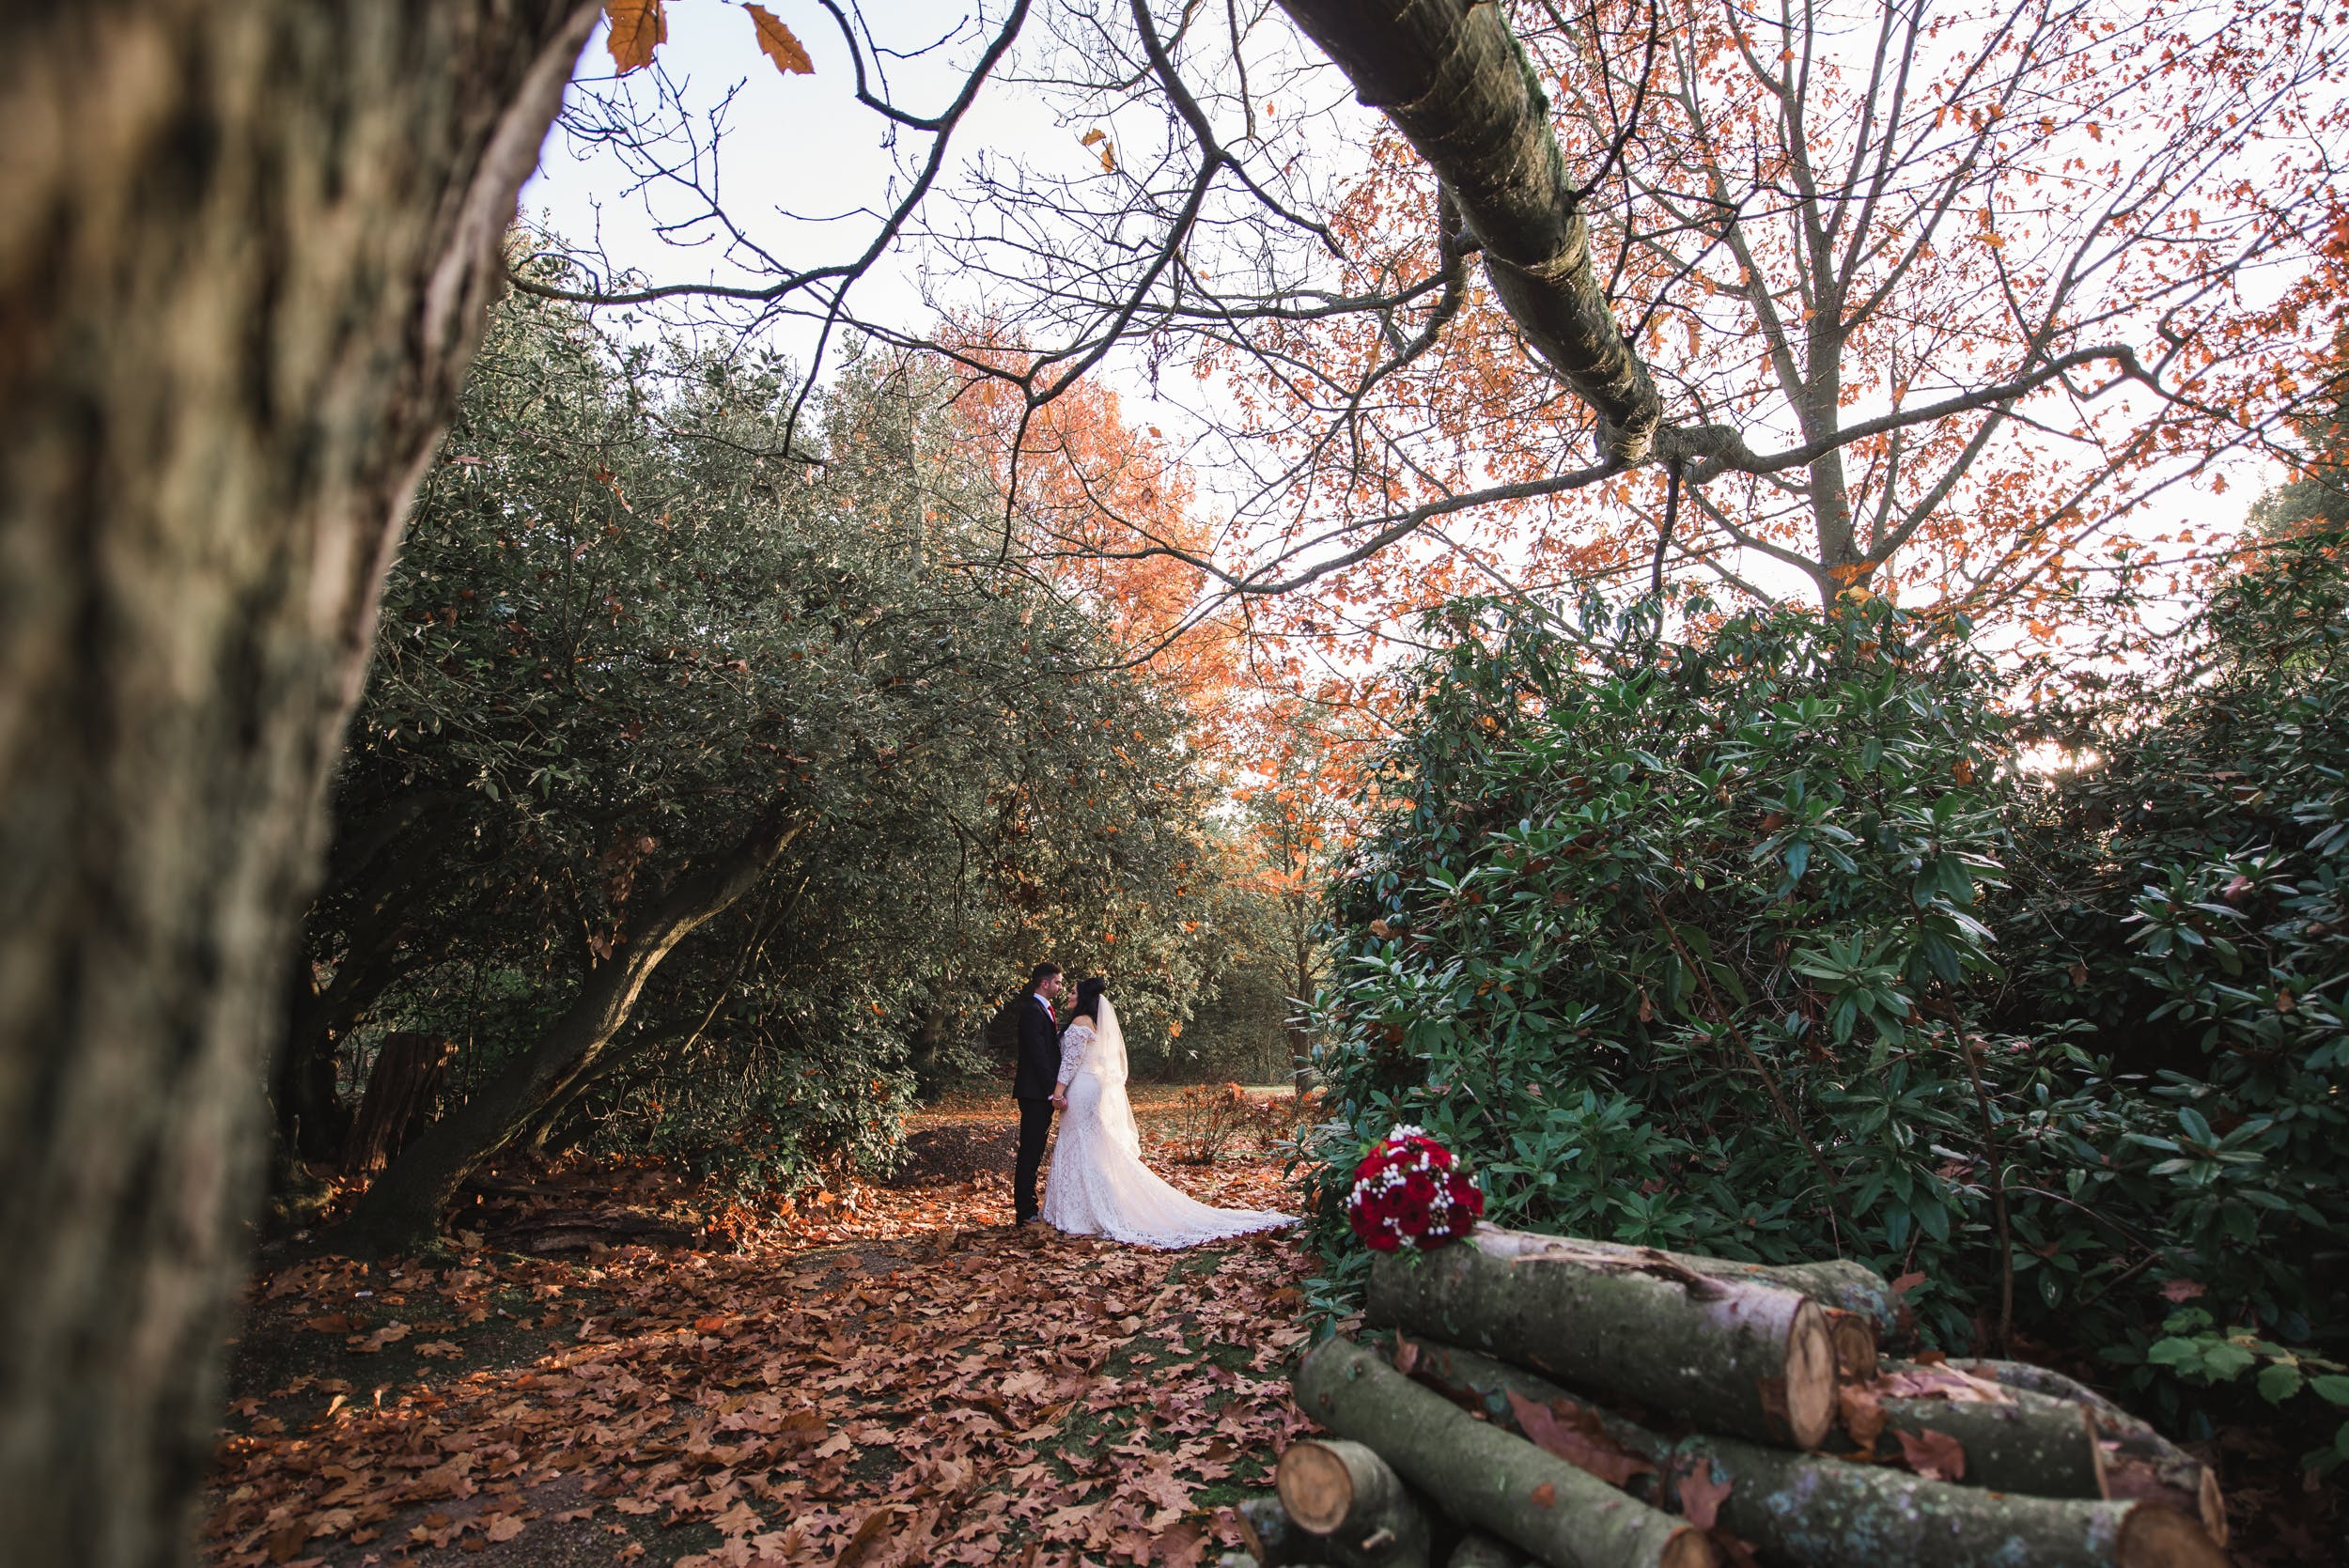 Autumn wedding, Cantley House near Reading